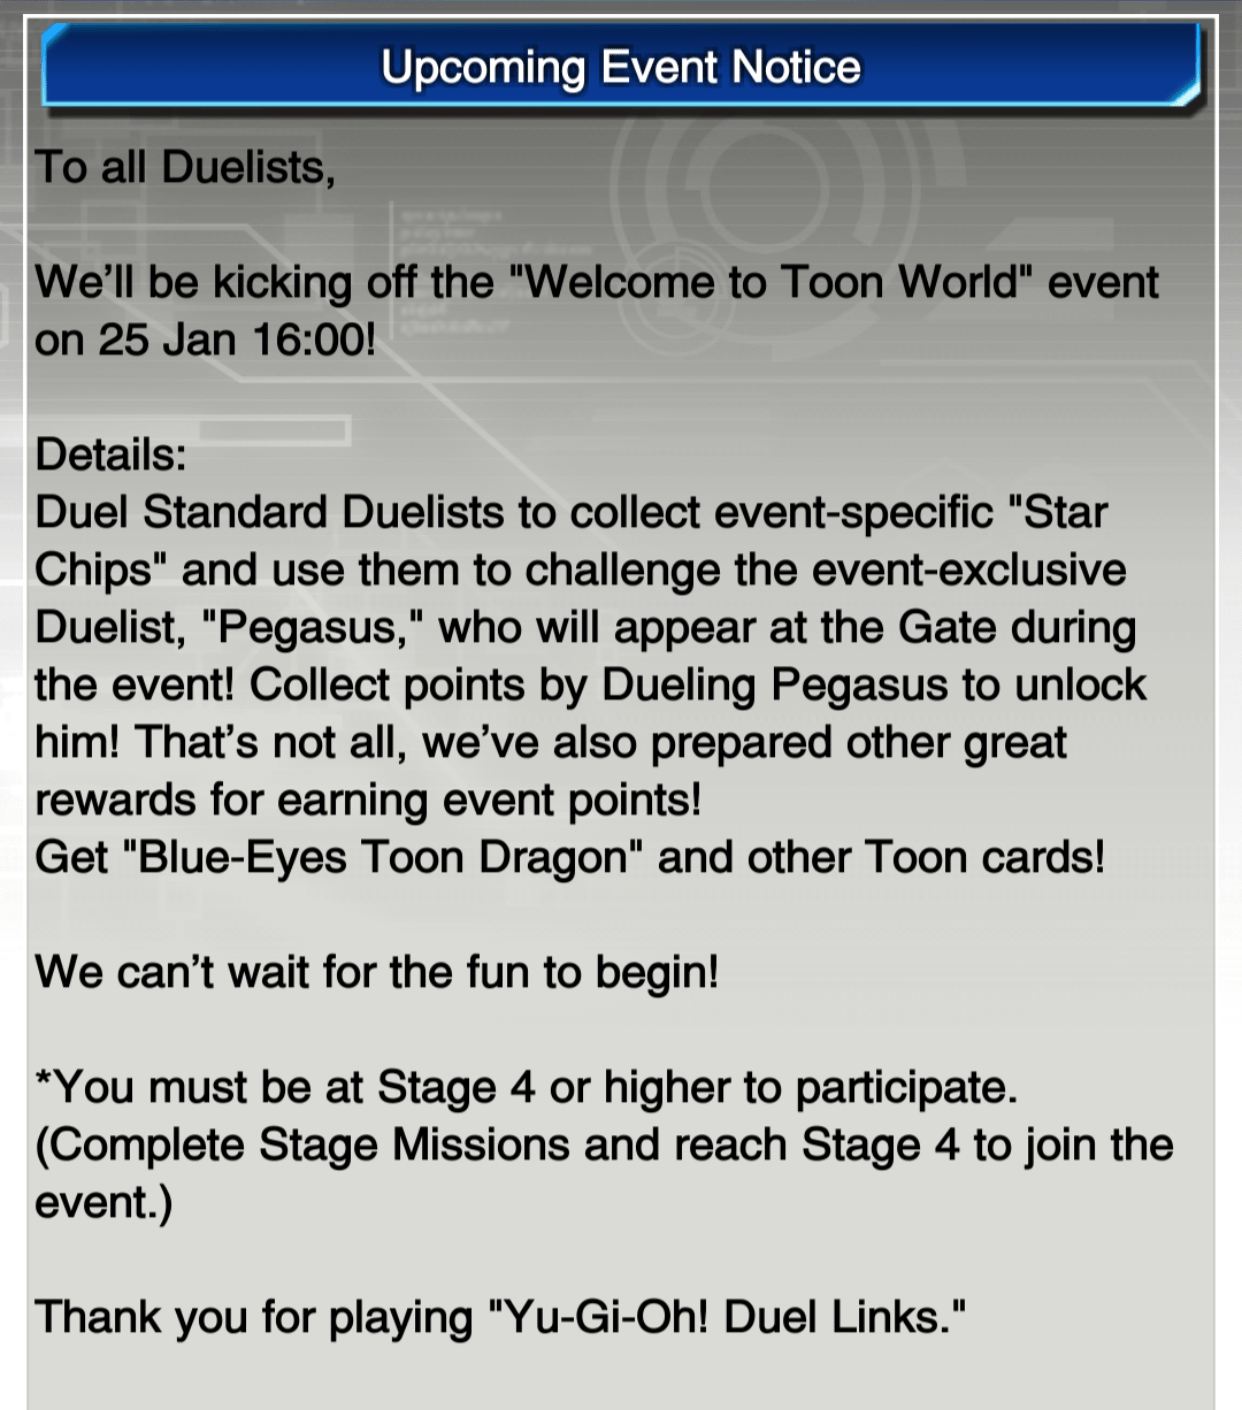 duel links campaign welcome to toon world beyond the duel